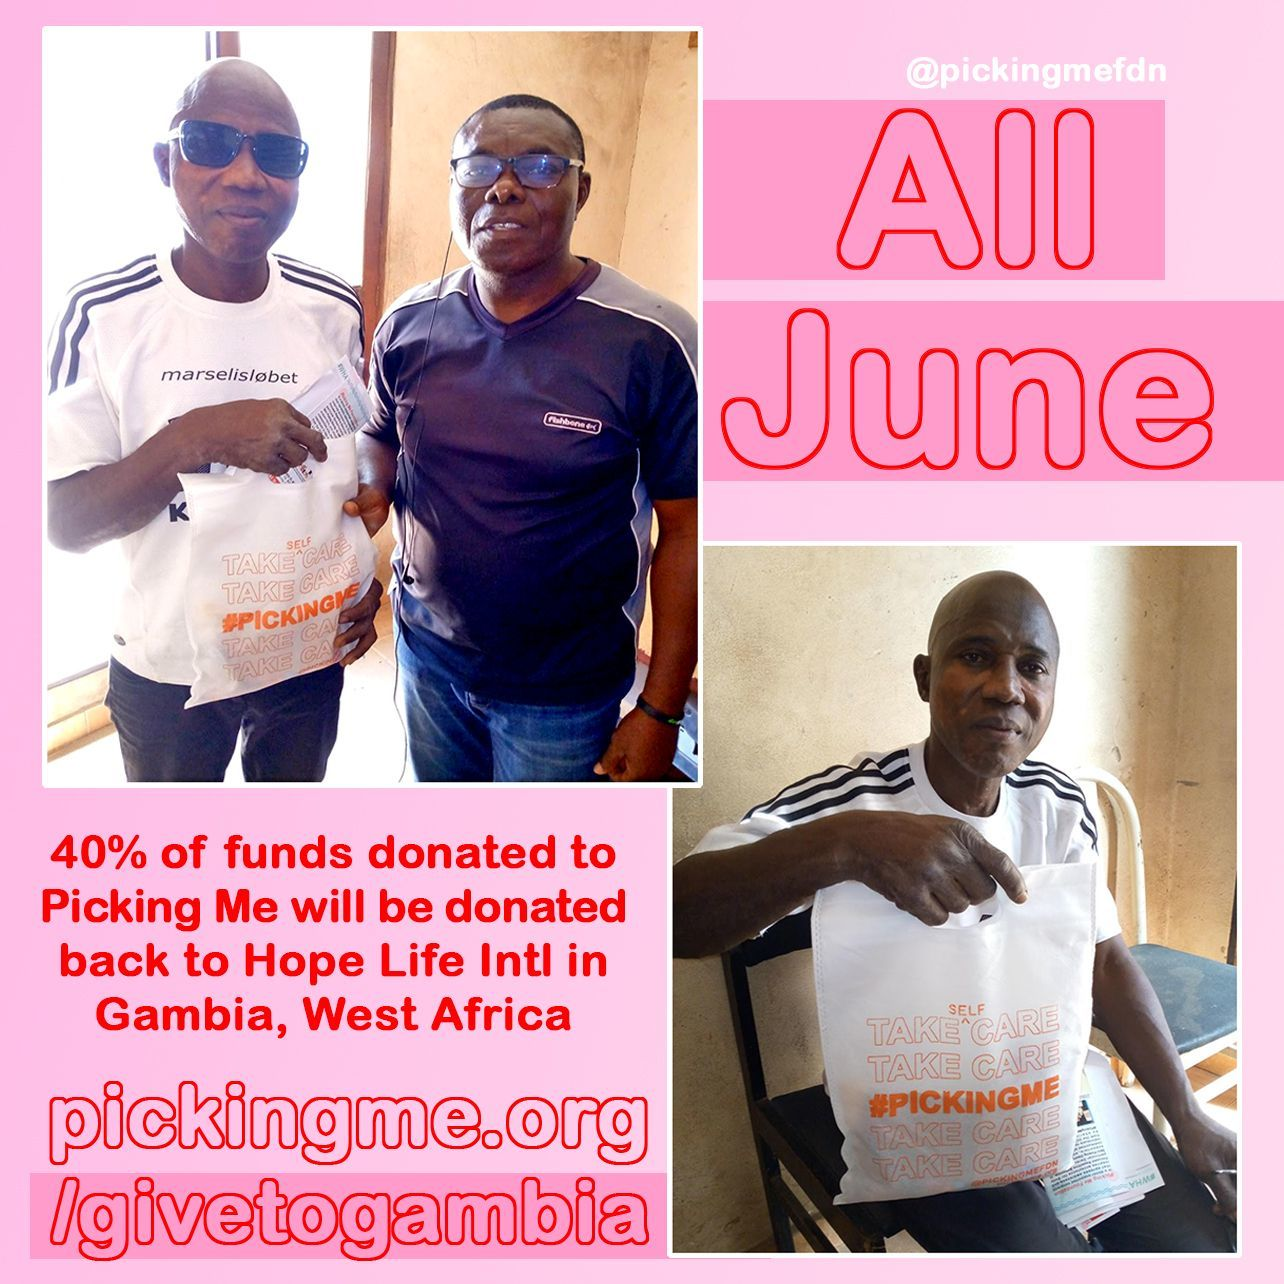 From now till Friday, June 18th 40% of funds raised will be donated back to Hope Life International in Gambia, West Africa!